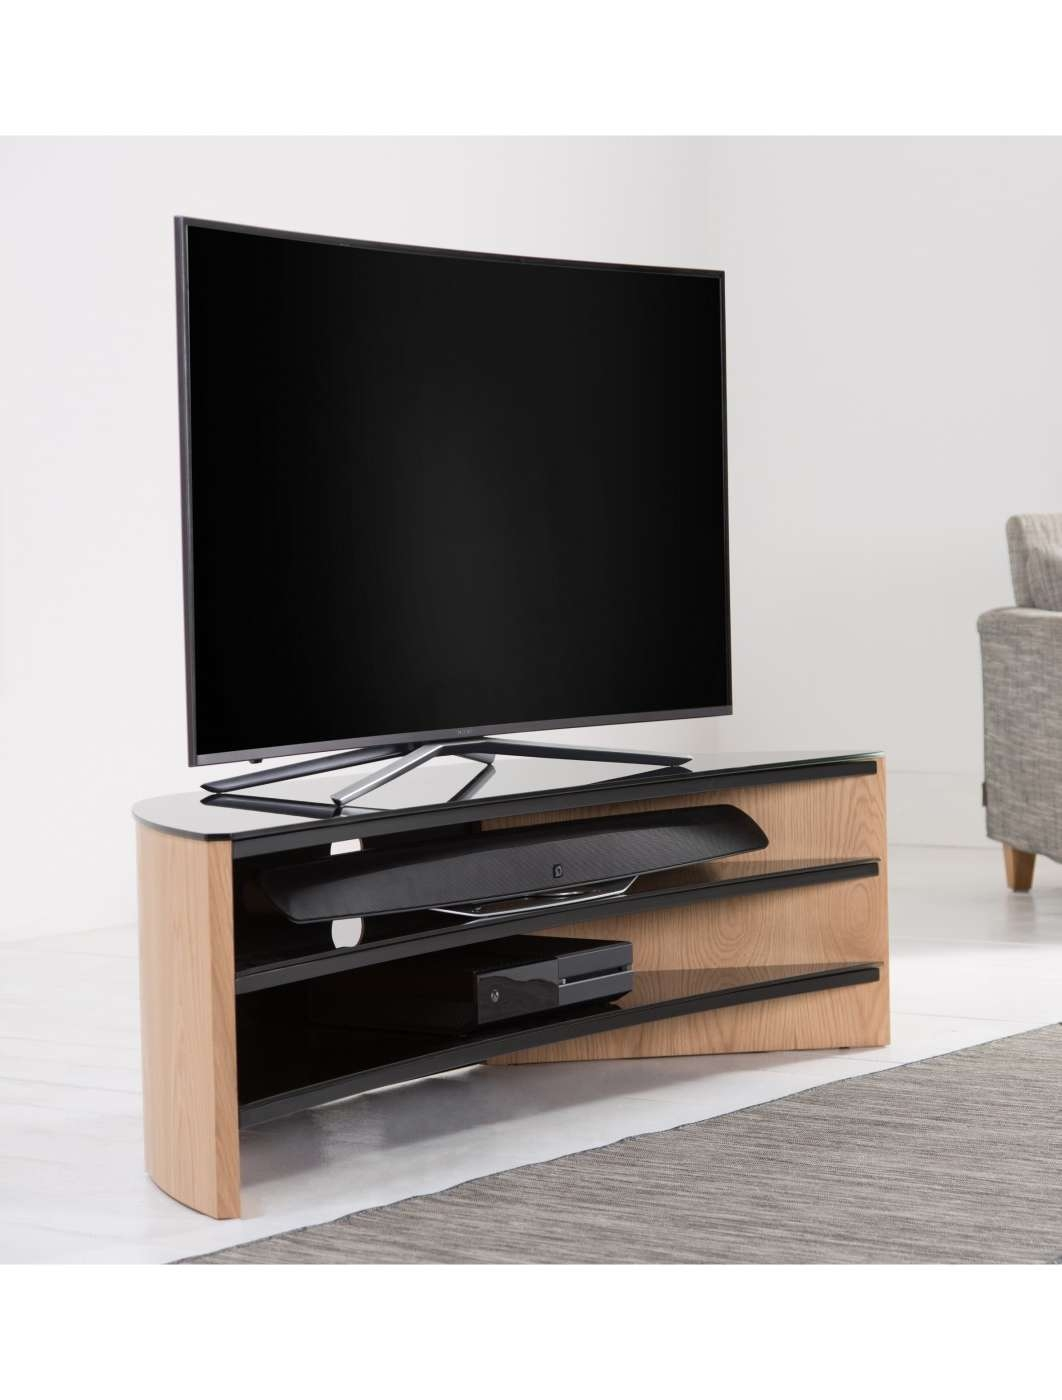 Alphason Finewoods Curve Tv Stand Fw1400C Lo | 121 Tv Mounts With Regard To Curve Tv Stands (View 1 of 15)